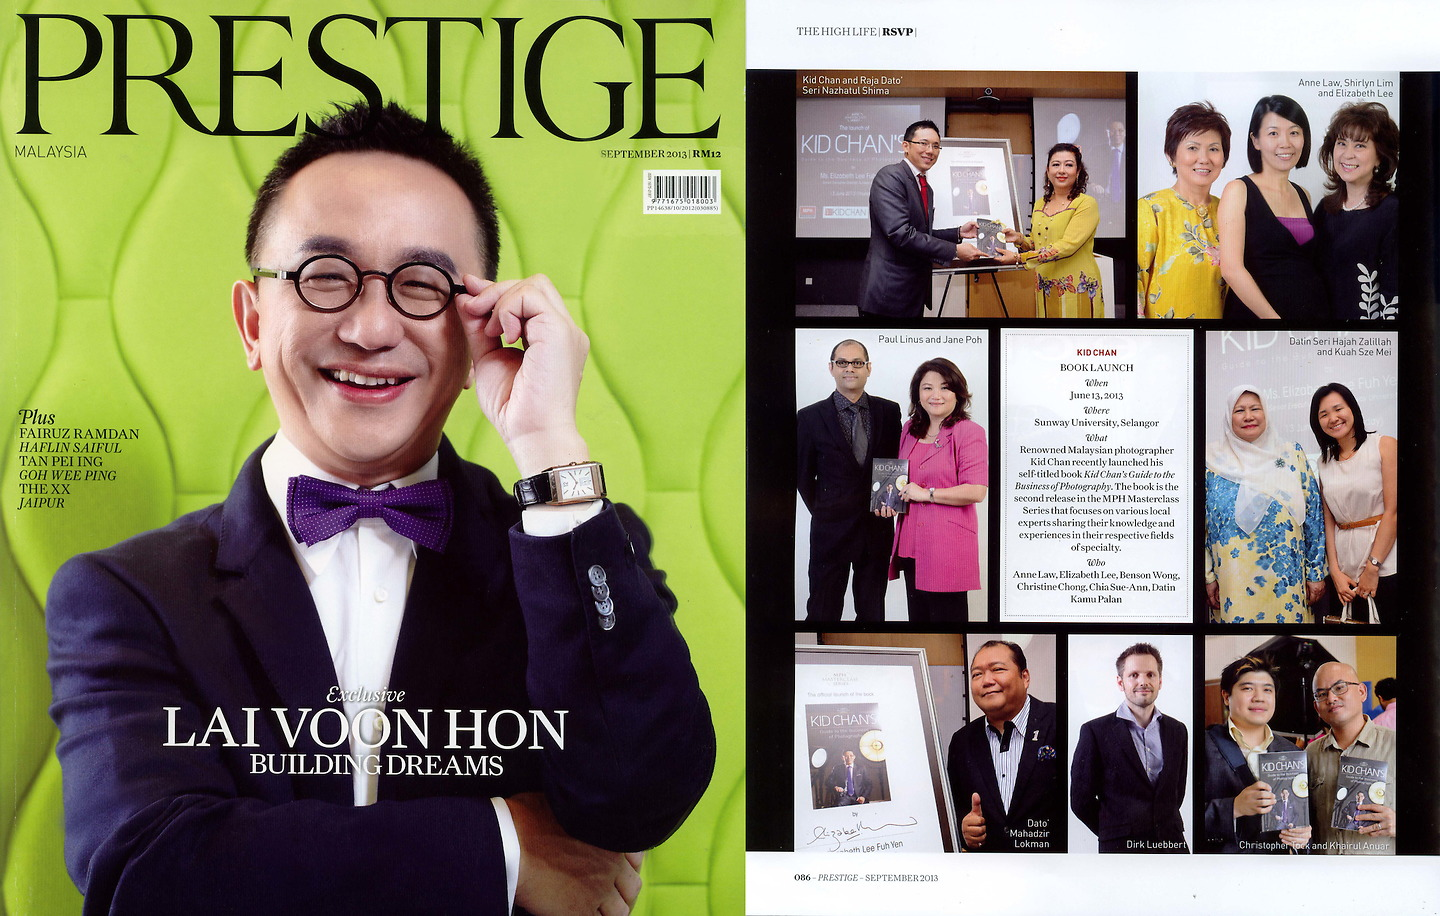 Prestige September 2013: Features Kid Chan